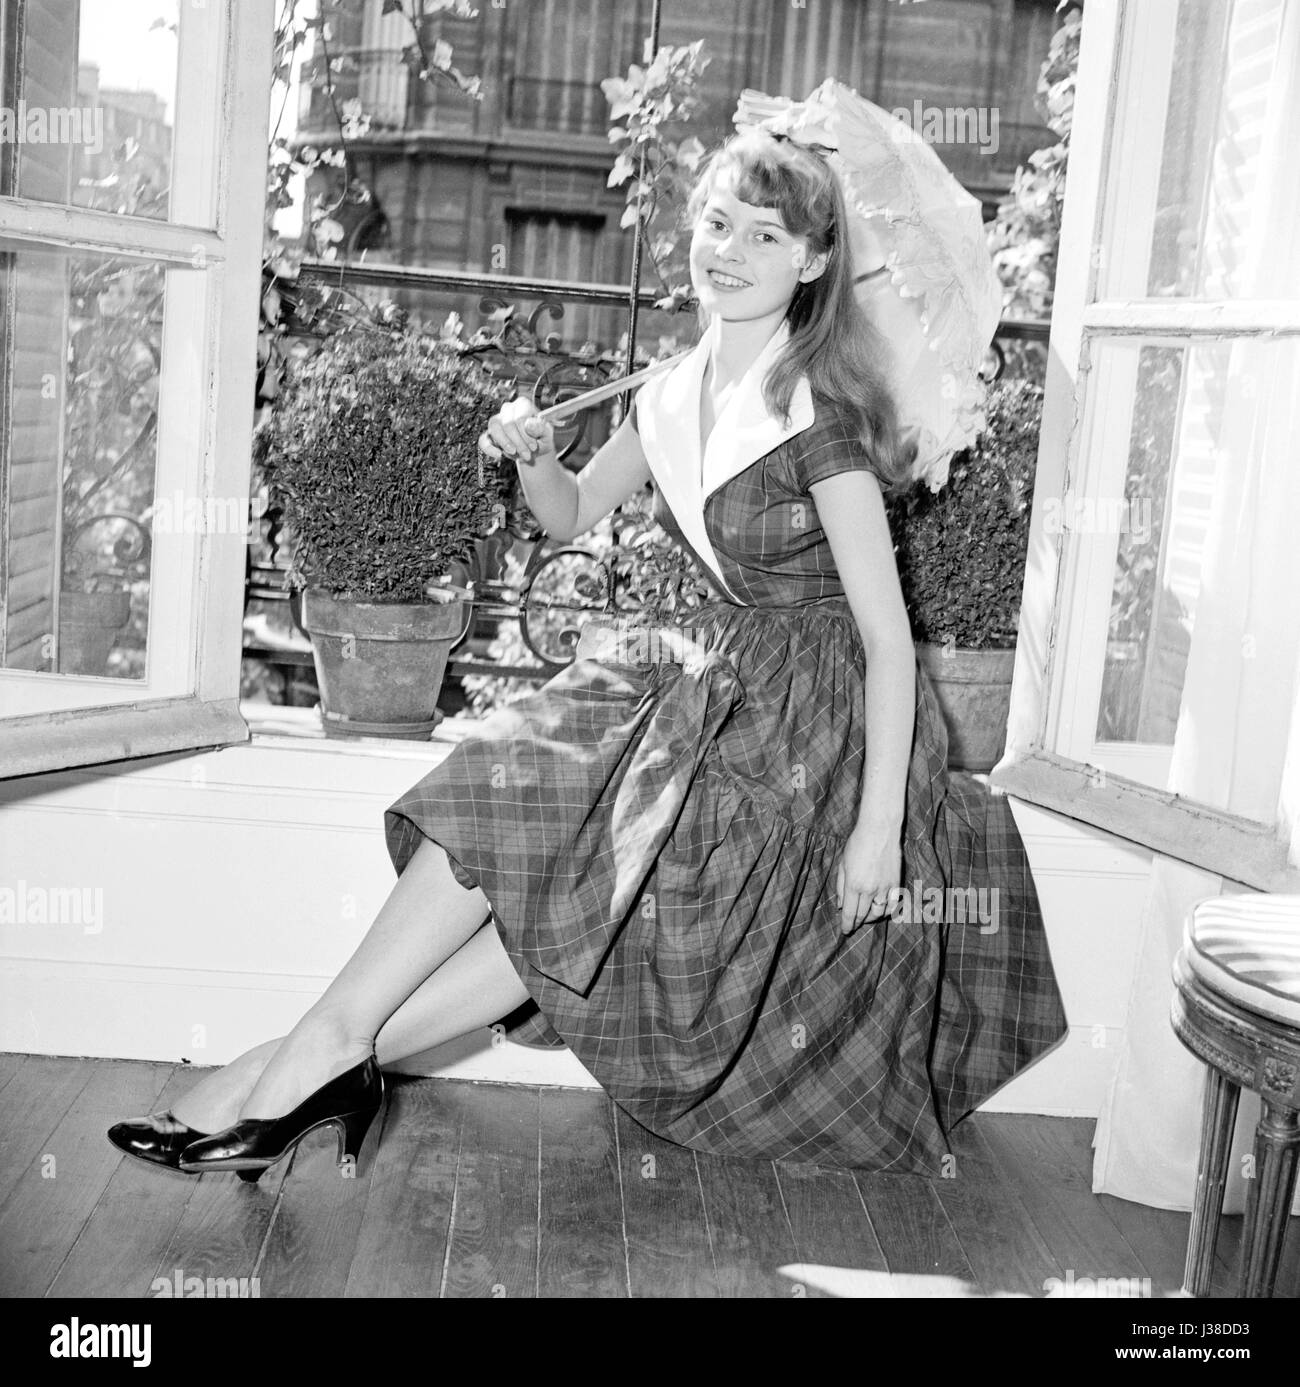 brigitte bardot photo stockfotos brigitte bardot photo bilder alamy. Black Bedroom Furniture Sets. Home Design Ideas